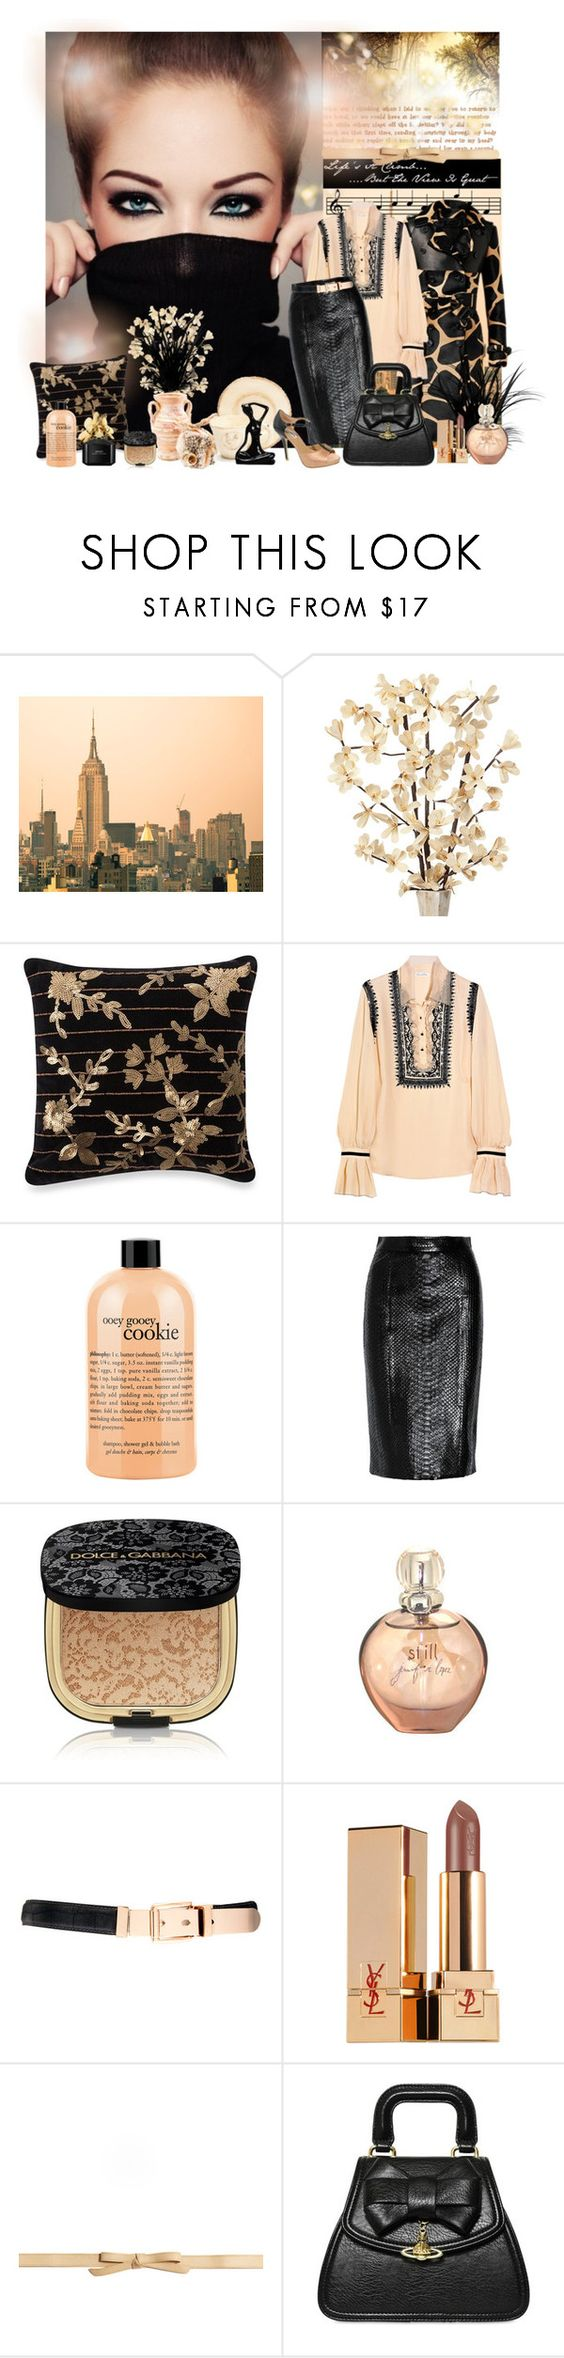 """""""Untitled #1051"""" by tina-teena ❤ liked on Polyvore featuring Burberry, Waterford, Oscar de la Renta, philosophy, Gucci, Dolce&Gabbana, Jennifer Lopez, Warehouse, Yves Saint Laurent and Elegantly Waisted"""